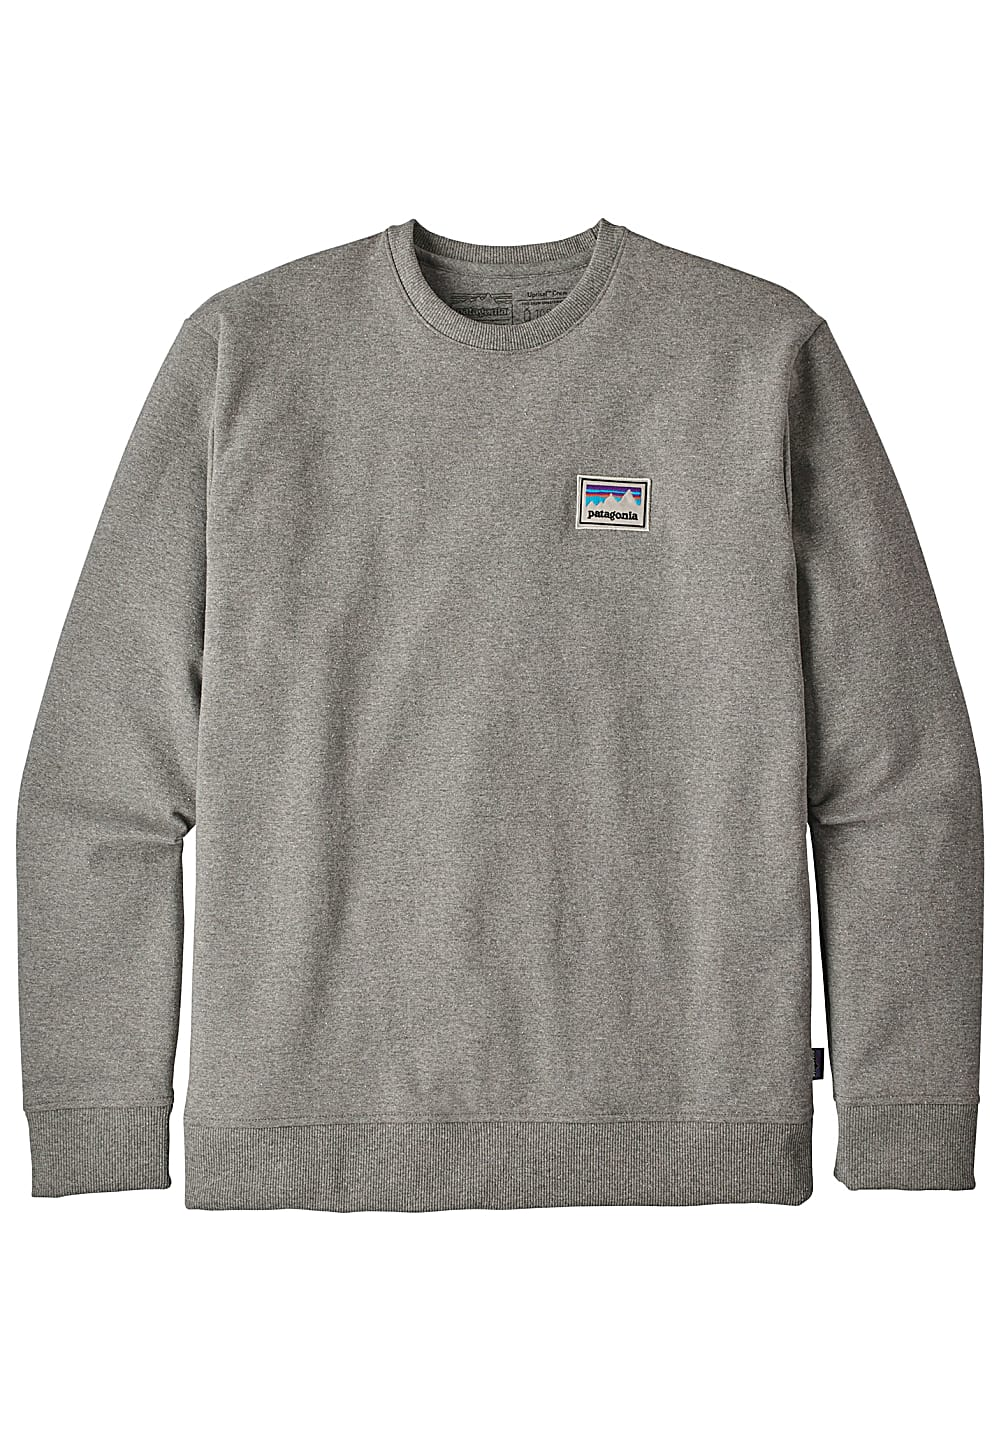 official photos f2c02 42b34 PATAGONIA Shop Sticker Patch Uprisal Crew - Sweatshirt for ...